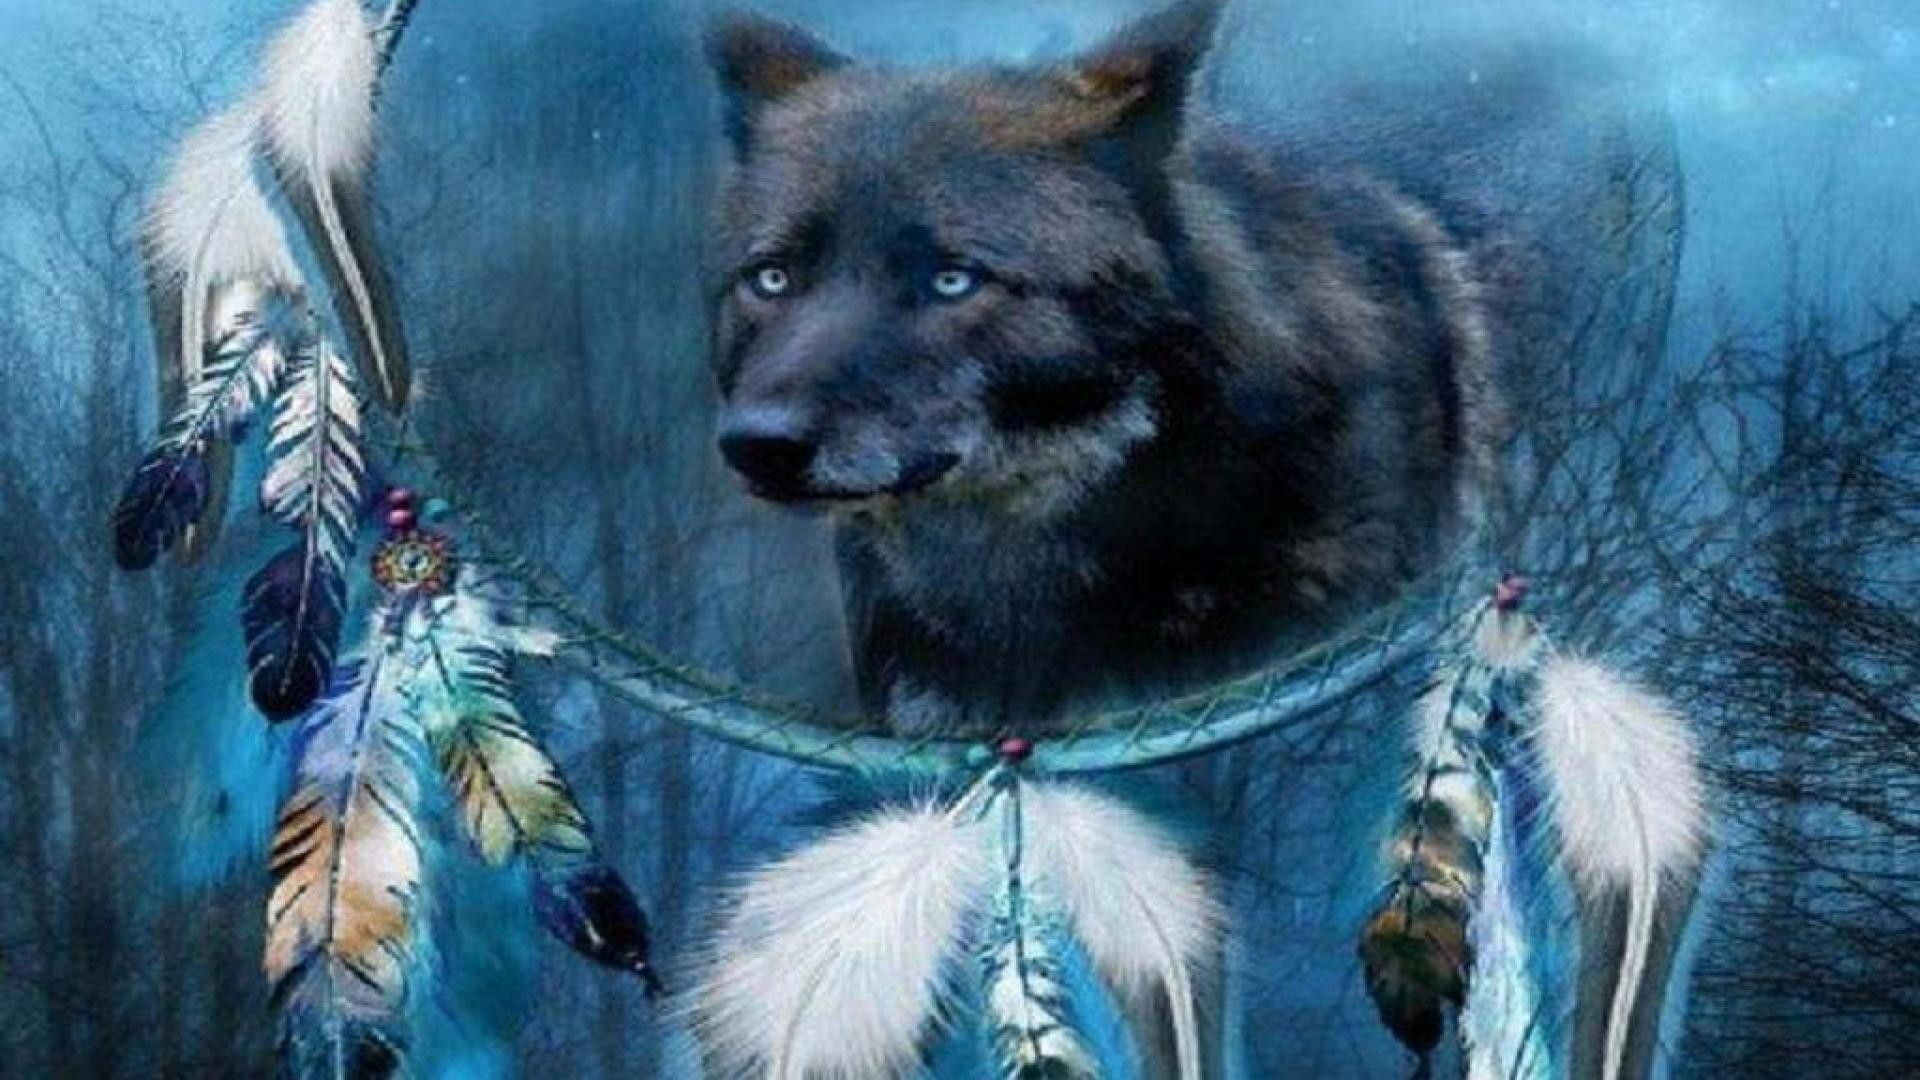 1920x1080 wolf dream catcher - Other & Animals Background Wallpapers on .